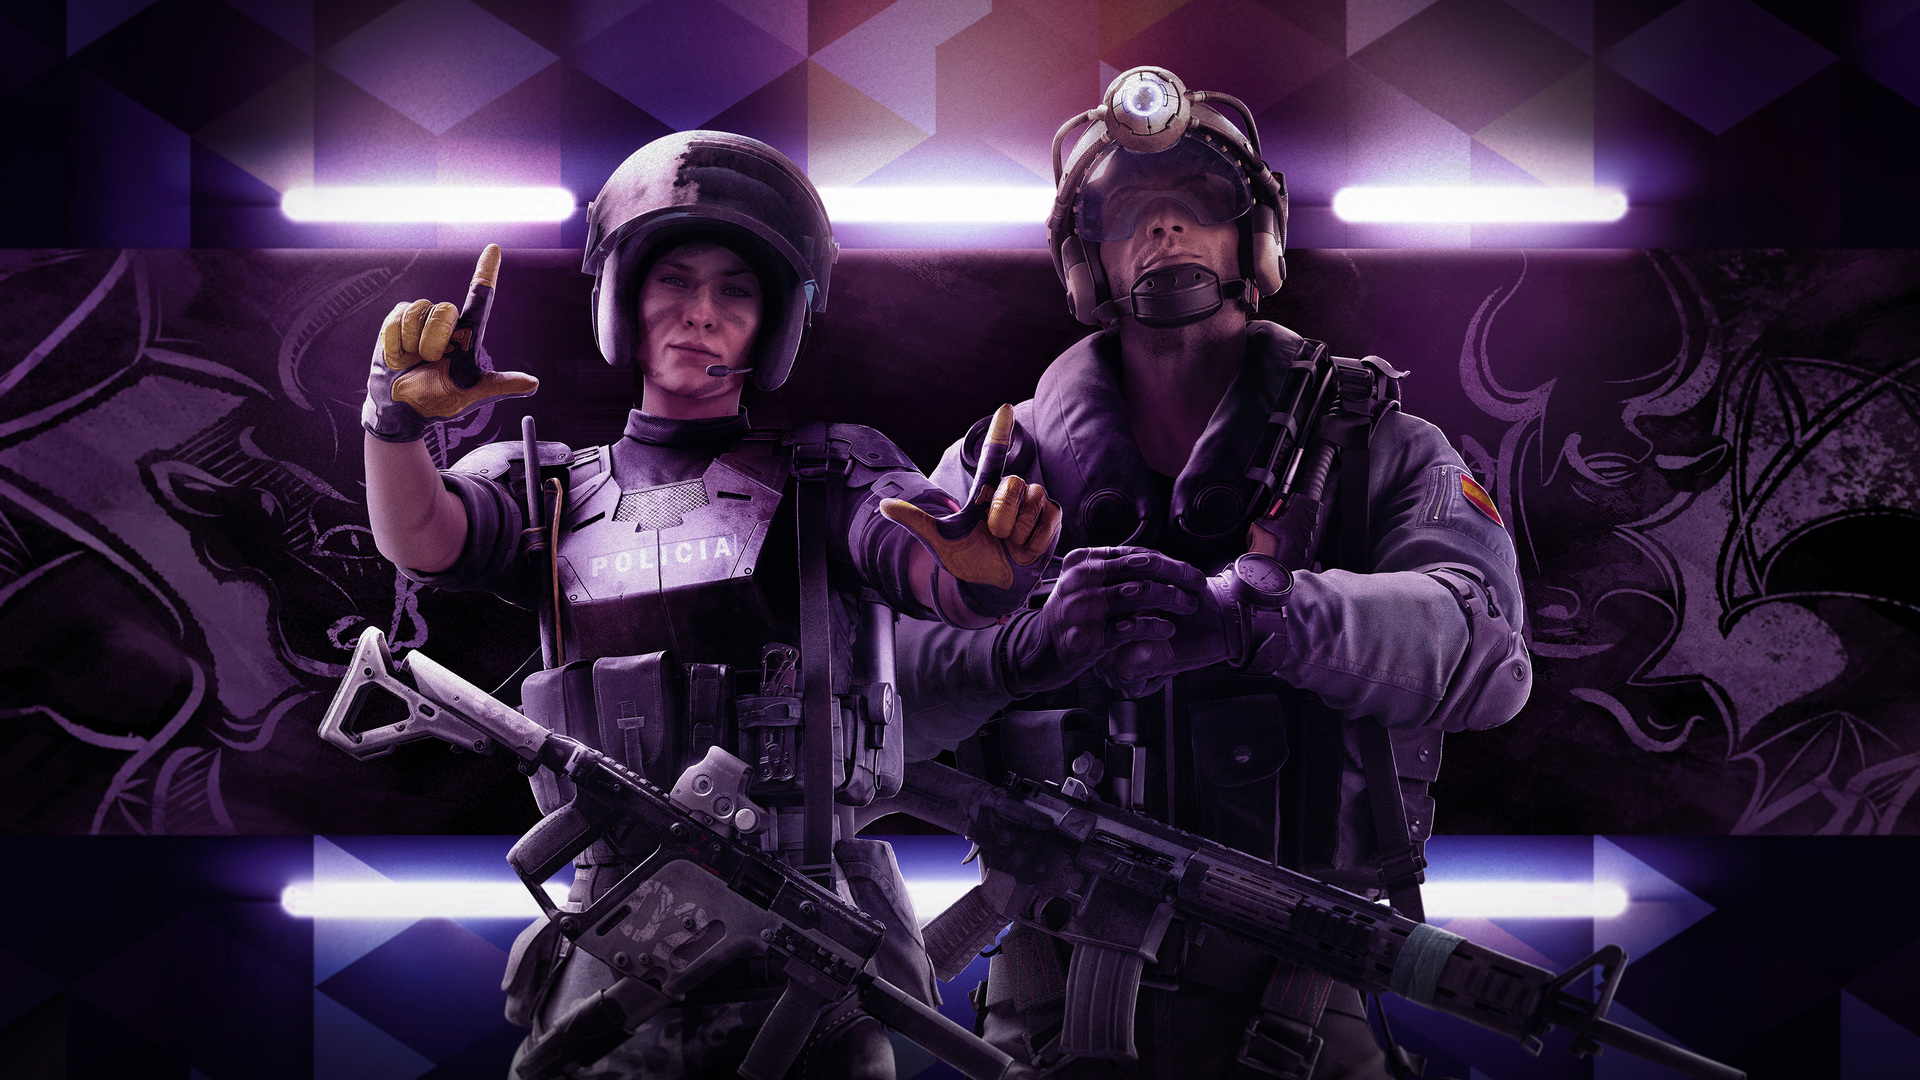 Rainbow Six Siege Wallpaper 1920x1080 Posted By Sarah Walker